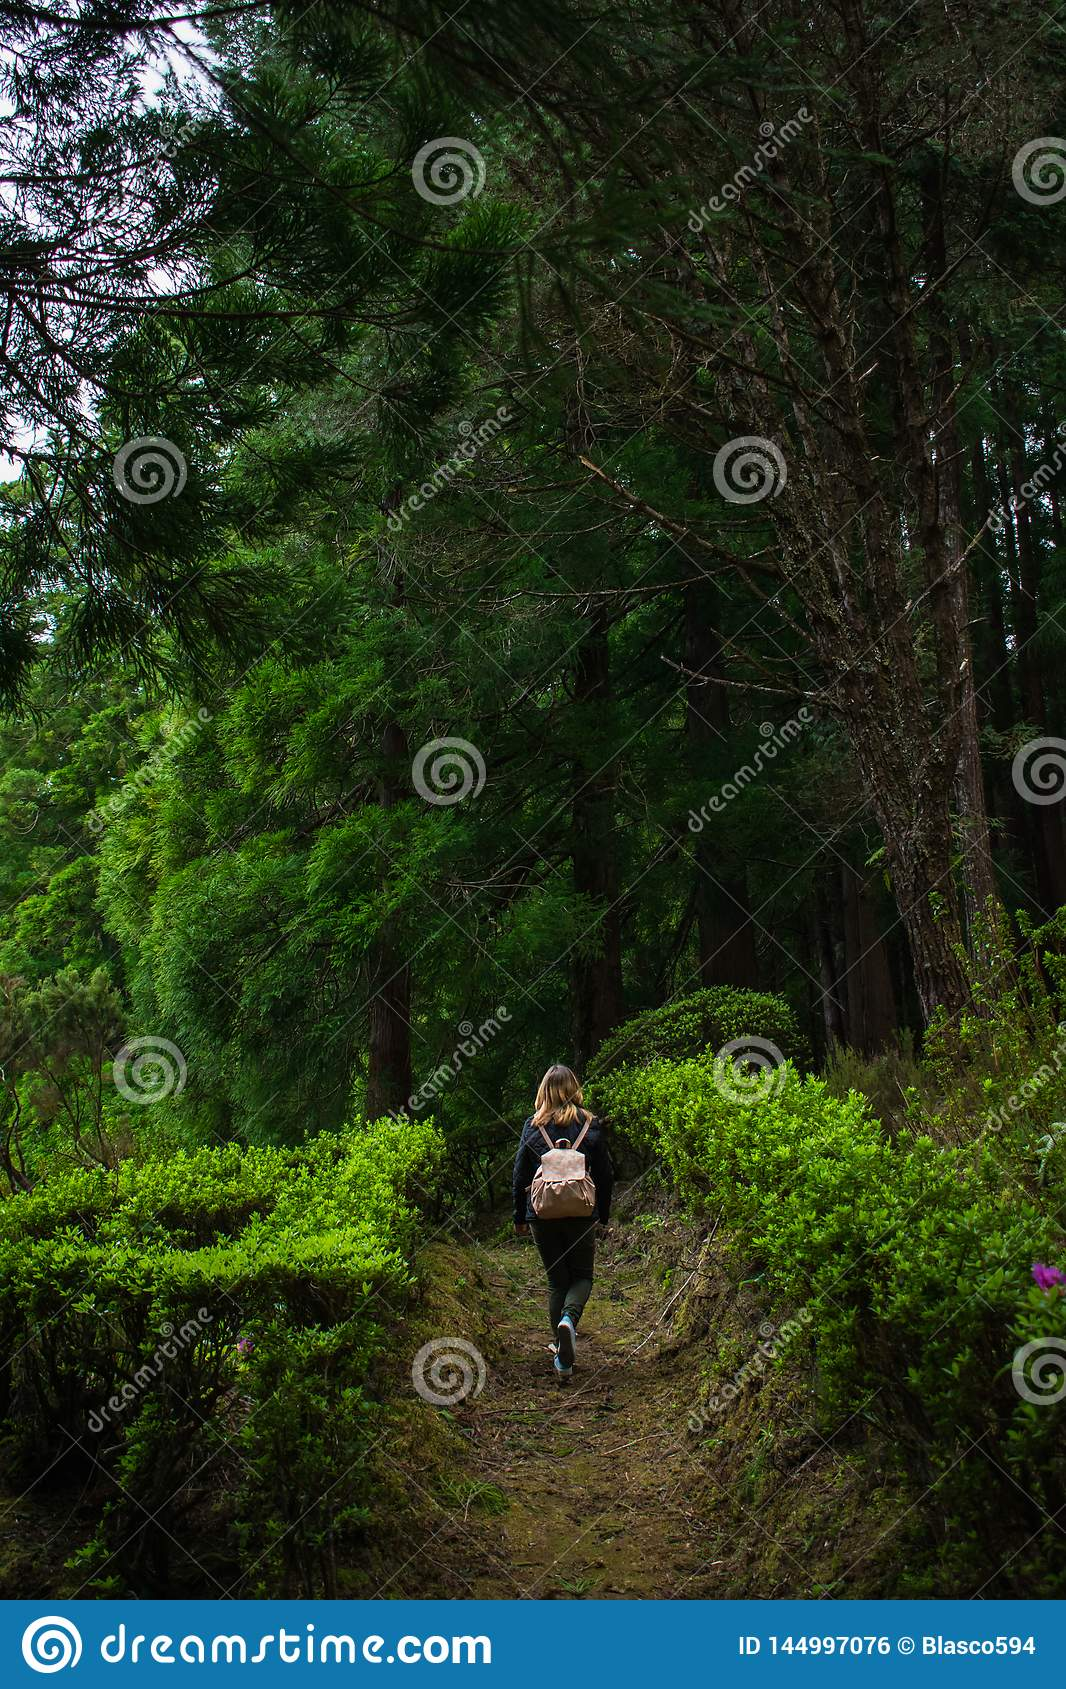 Forest in Sao Miguel, Azores, Portugal. Tall trees